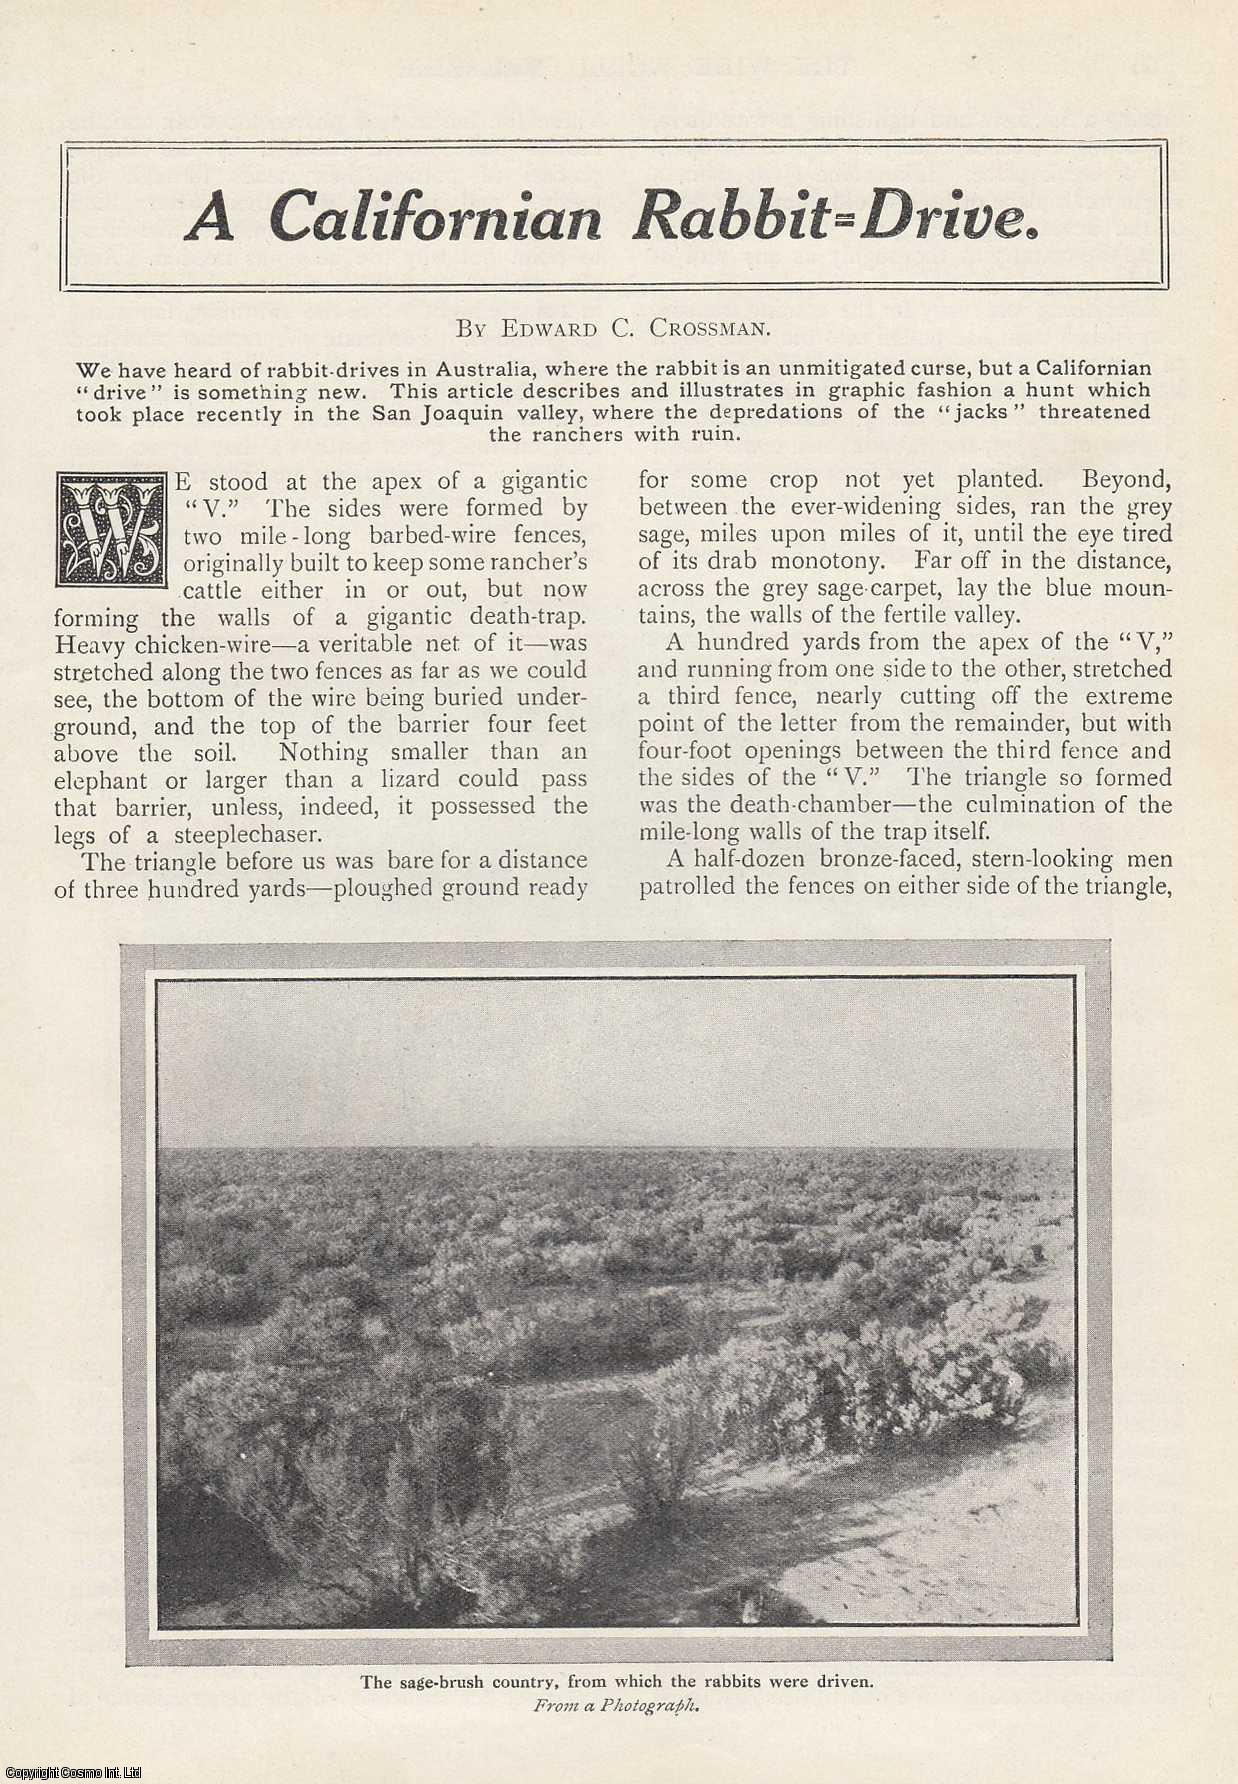 A Californian Rabbit Drive. A hunt which took place in the San Joaquin valley., Crossman, Edward C.